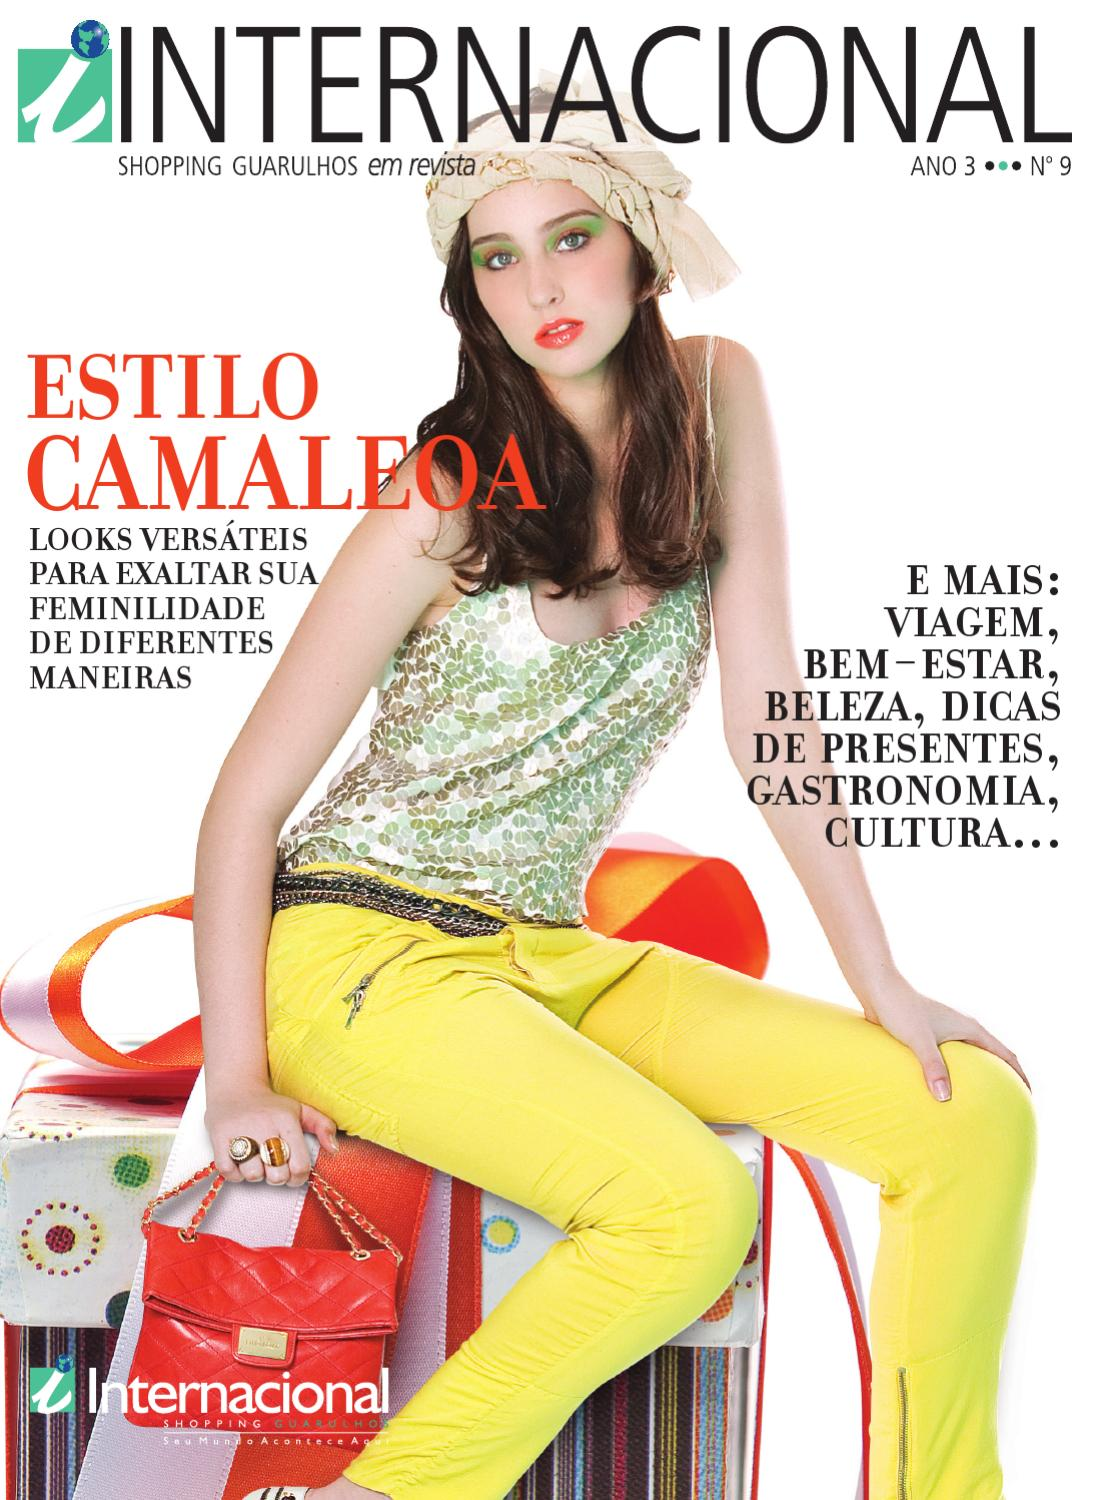 fb5894958 Revista Internacional Shop. Guarulhos - Ed. 09 by Profashional Editora -  issuu